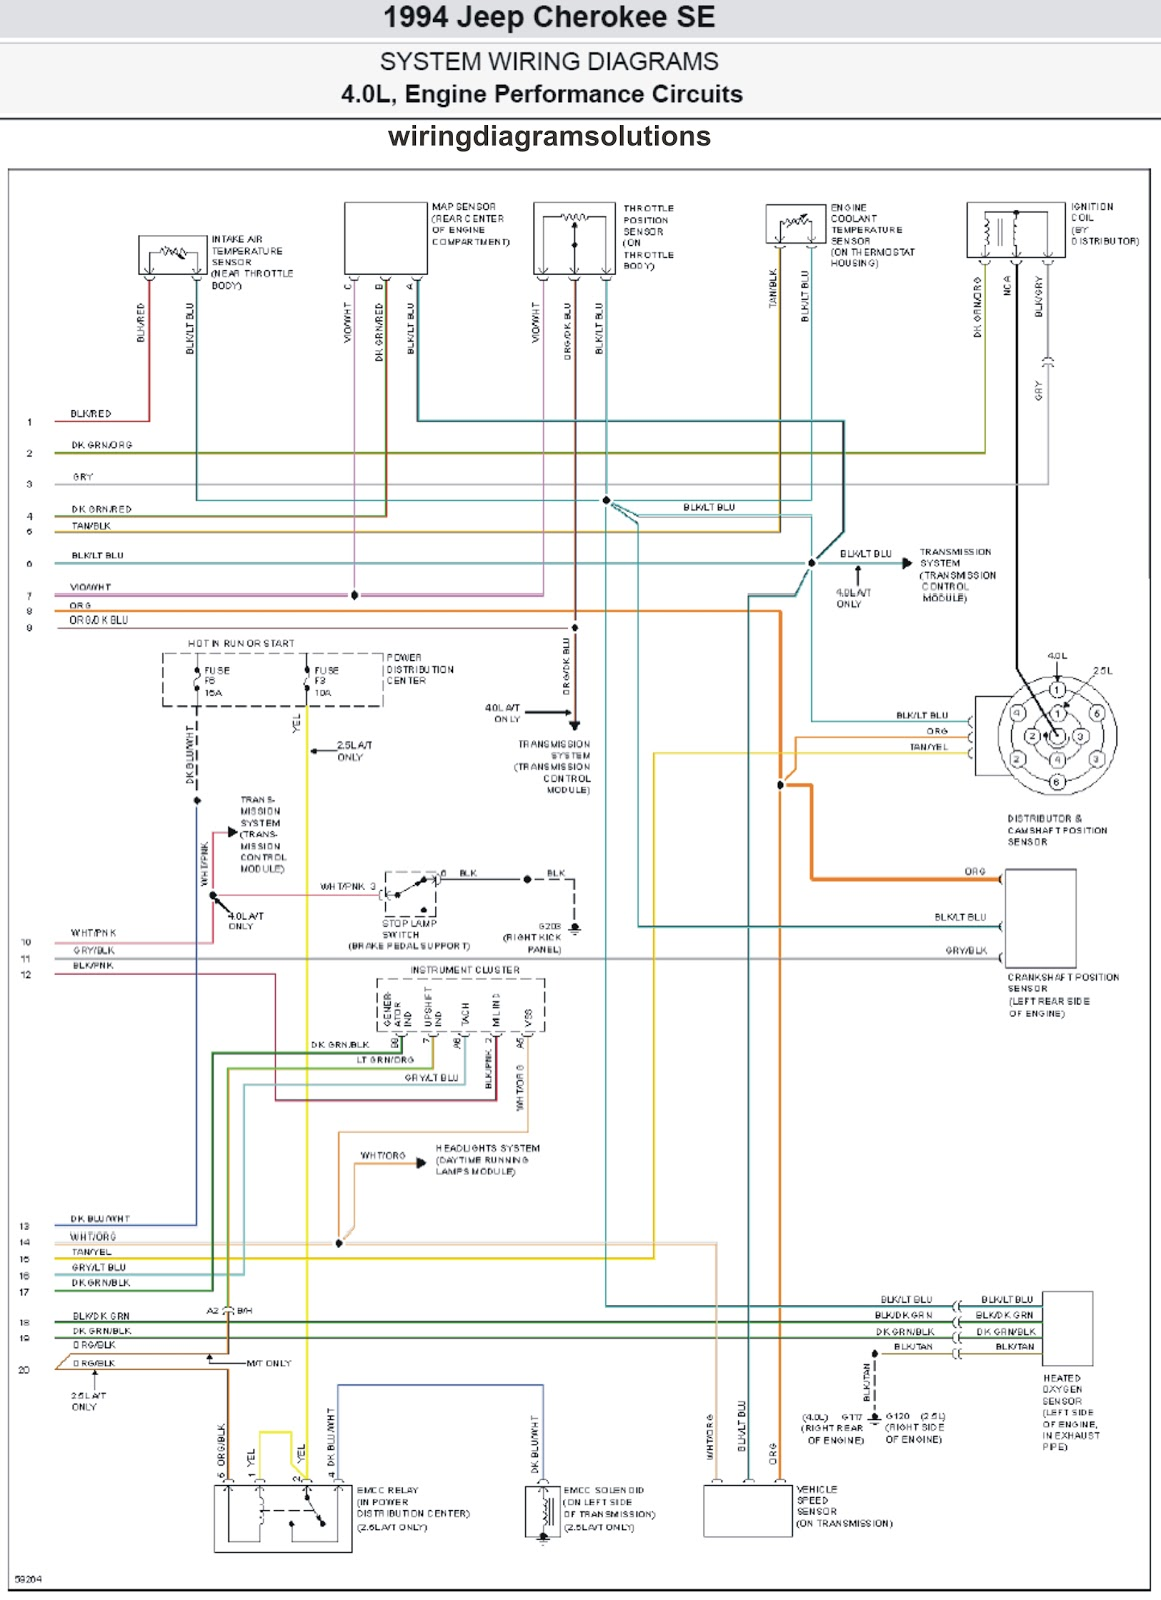 mazda lights wiring diagram best part of wiring diagrammazda b2000 tailight wiring online wiring diagram [ 1161 x 1600 Pixel ]